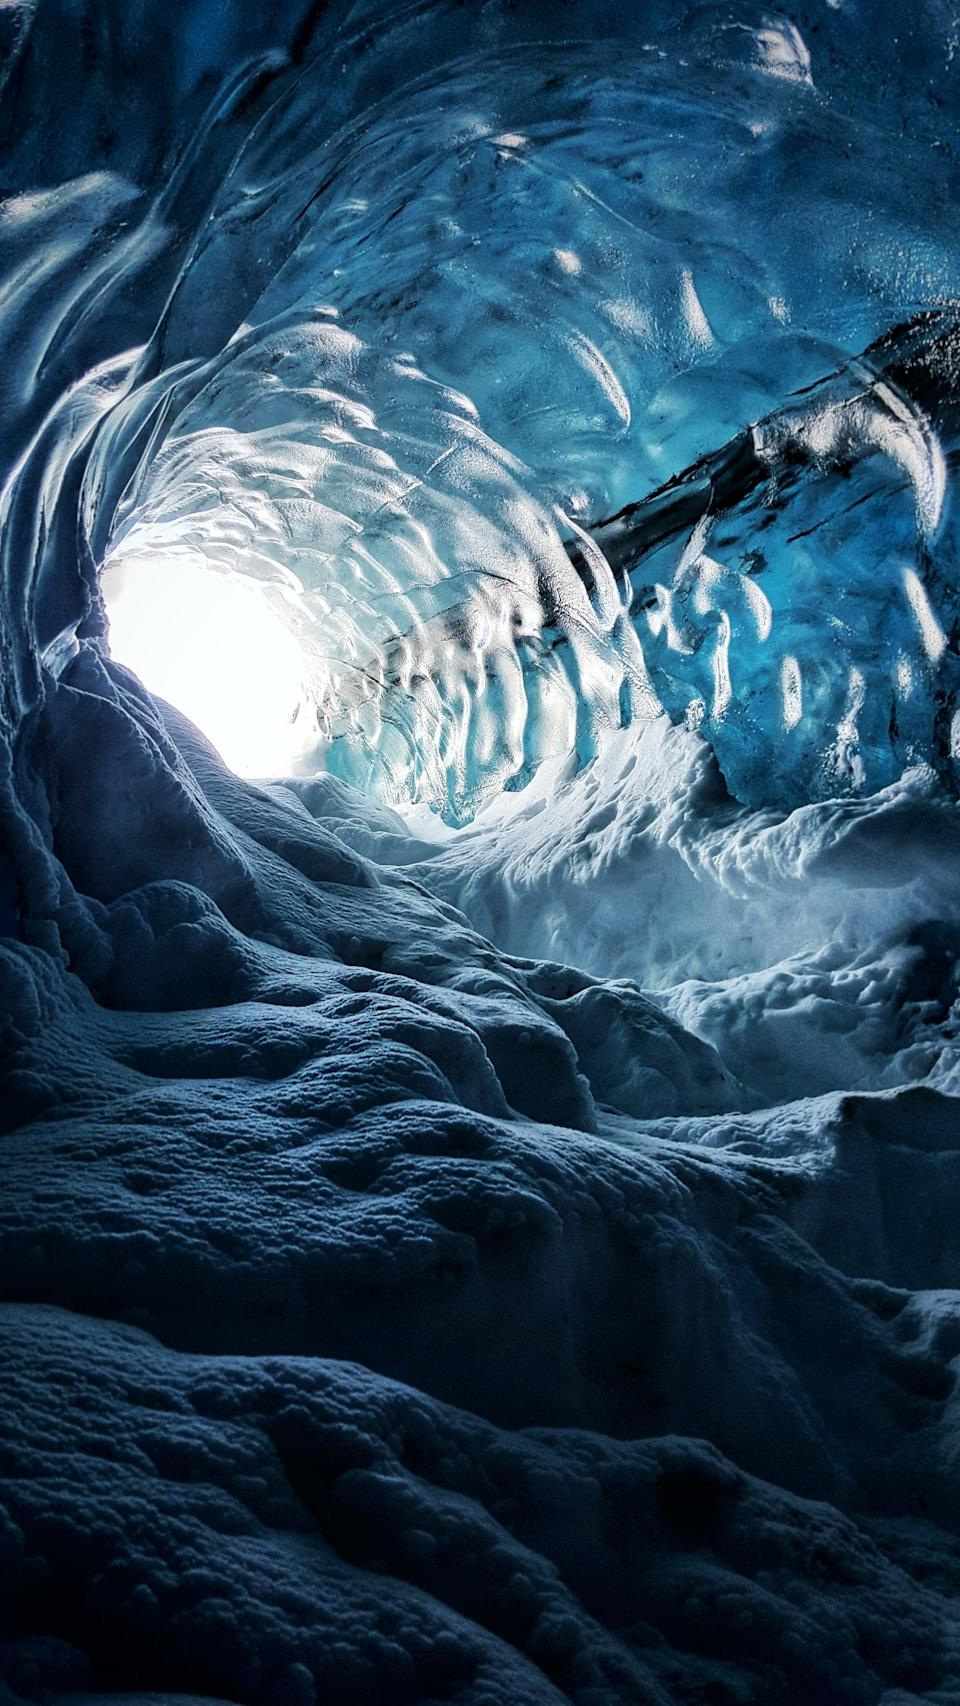 """<p>Take a stroll in one of the many awe-inspiring <a href=""""https://www.popsugar.com/smart-living/Ice-Cave-Iceland-43320961"""" class=""""link rapid-noclick-resp"""" rel=""""nofollow noopener"""" target=""""_blank"""" data-ylk=""""slk:glacier ice caves in Iceland"""">glacier ice caves in Iceland</a>. </p>"""